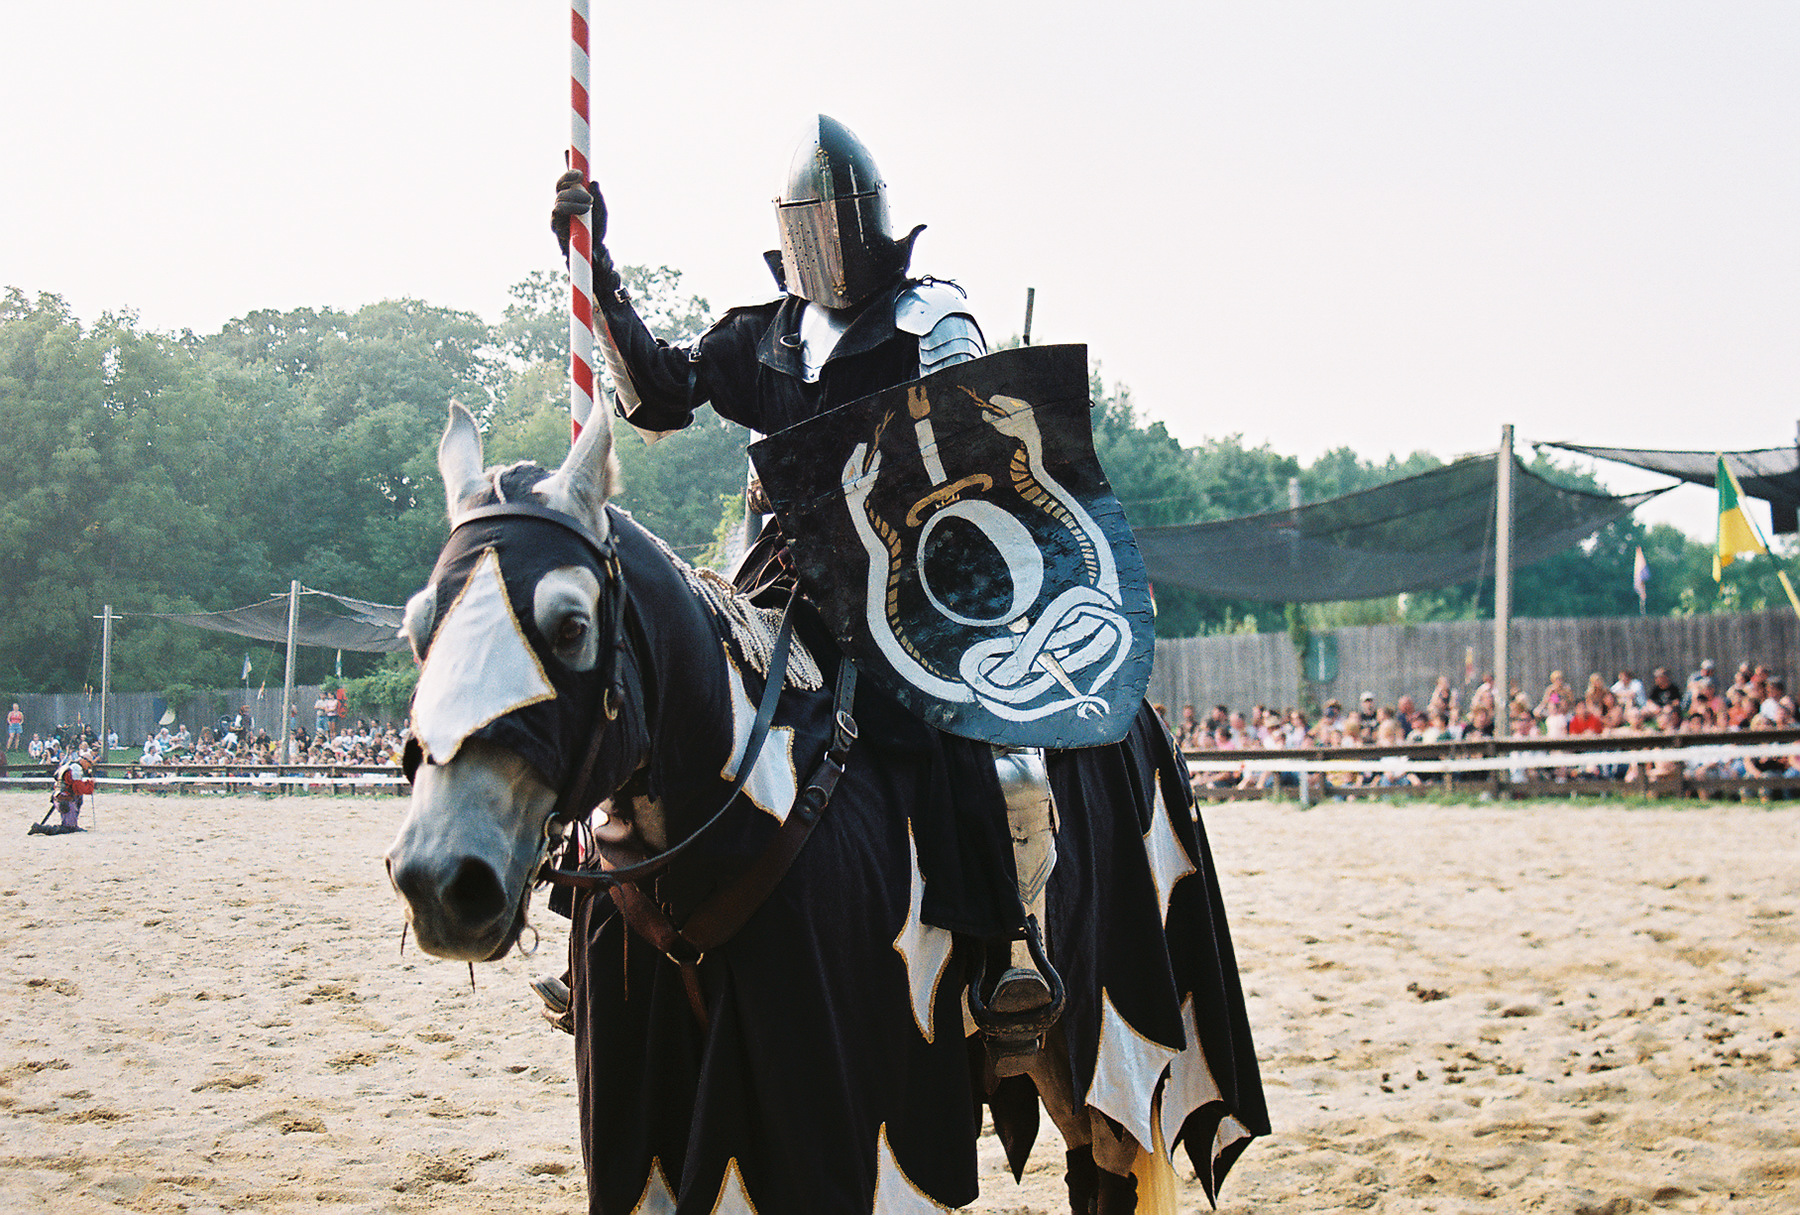 Don't Miss This Year's Sarasota Medieval Fair